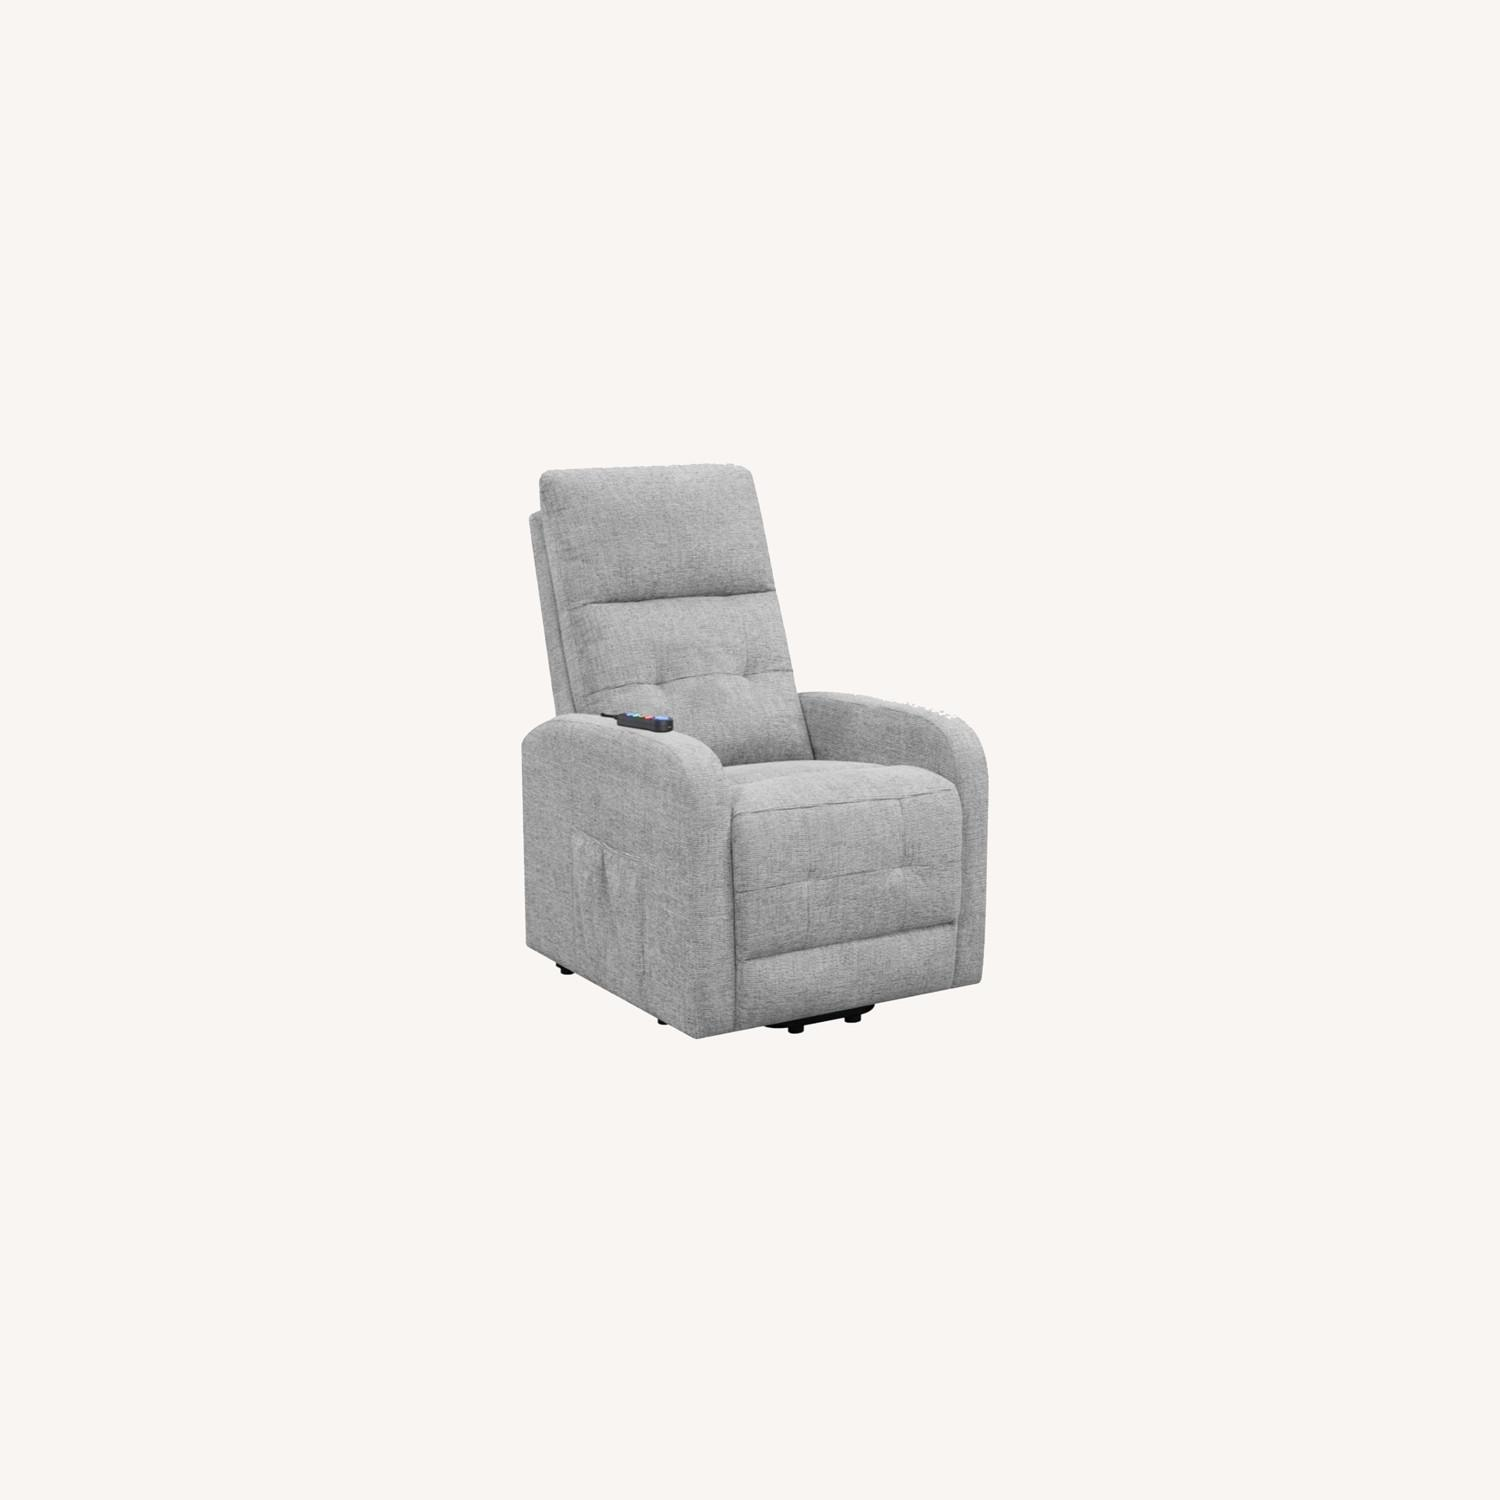 Power Lift Massage Chair In Grey Fabric - image-8